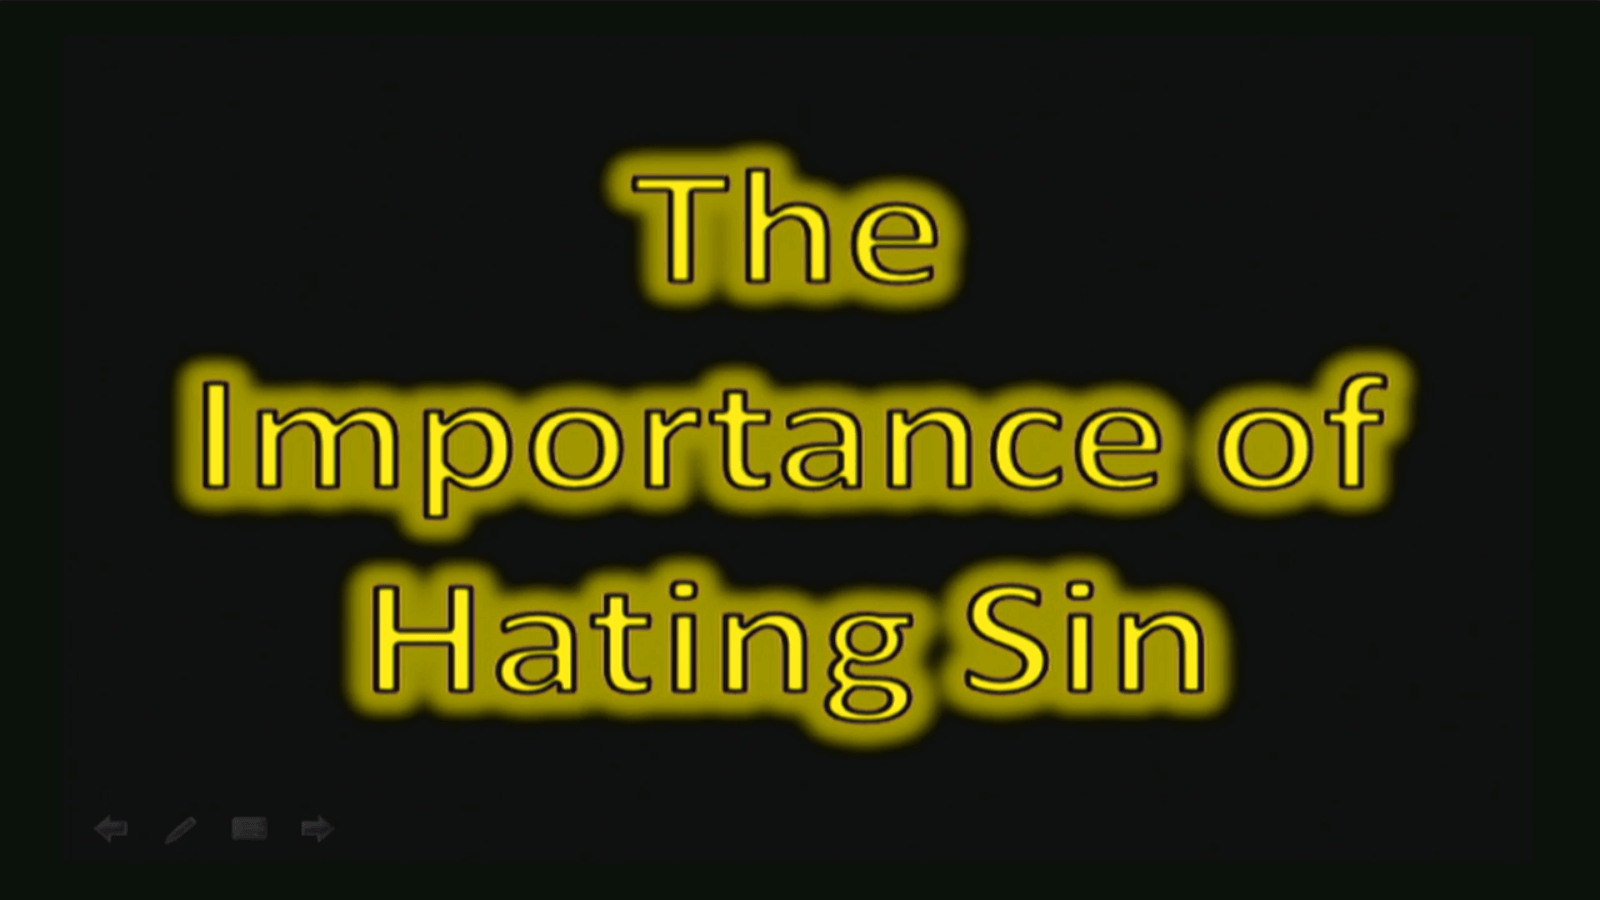 The Importance of Hating Sin